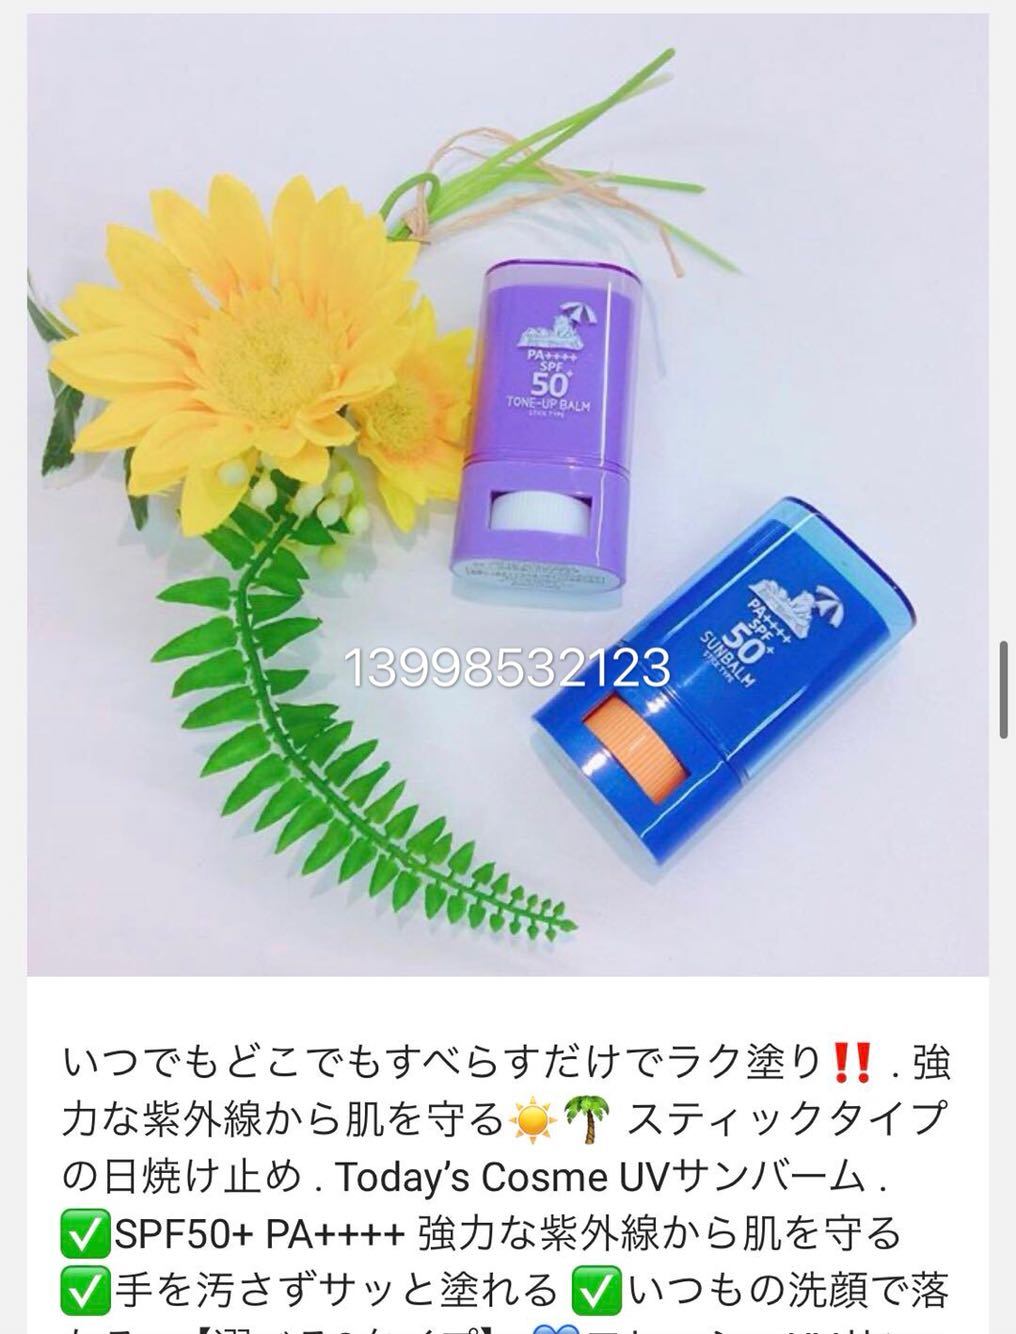 Japan rotary non dirty hand anti history Apple Lavender spf50 isolation and repair sunscreen stick 15g